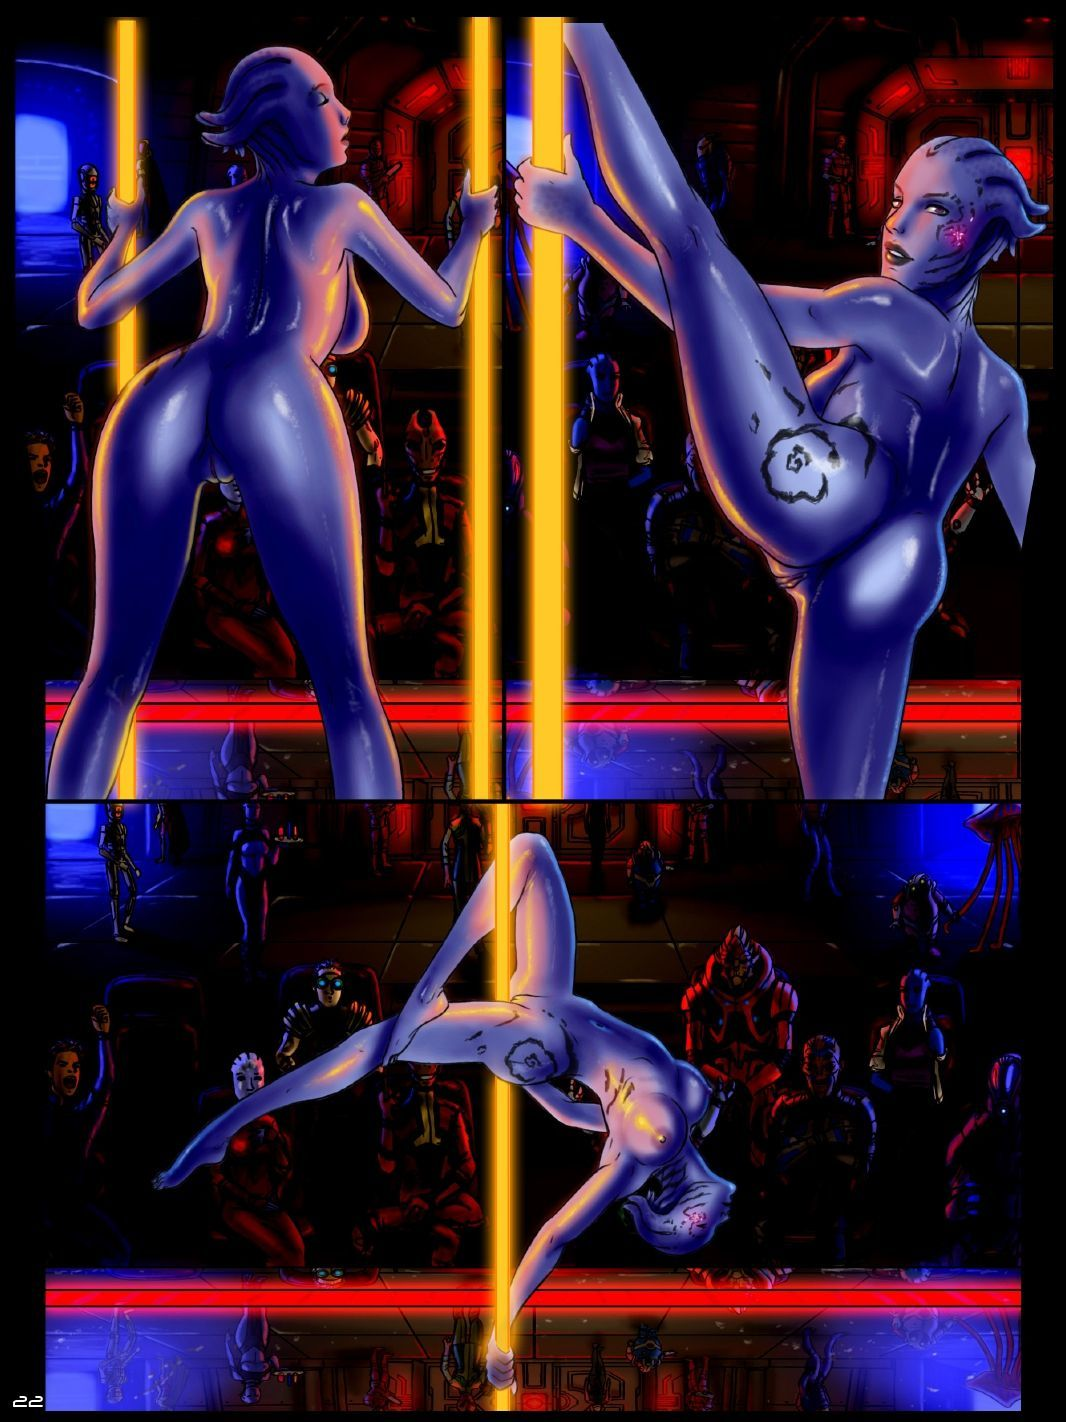 FORNAX_The_galaxys_finest_xenophilia_(Mass_Effect) comix_57967.jpg